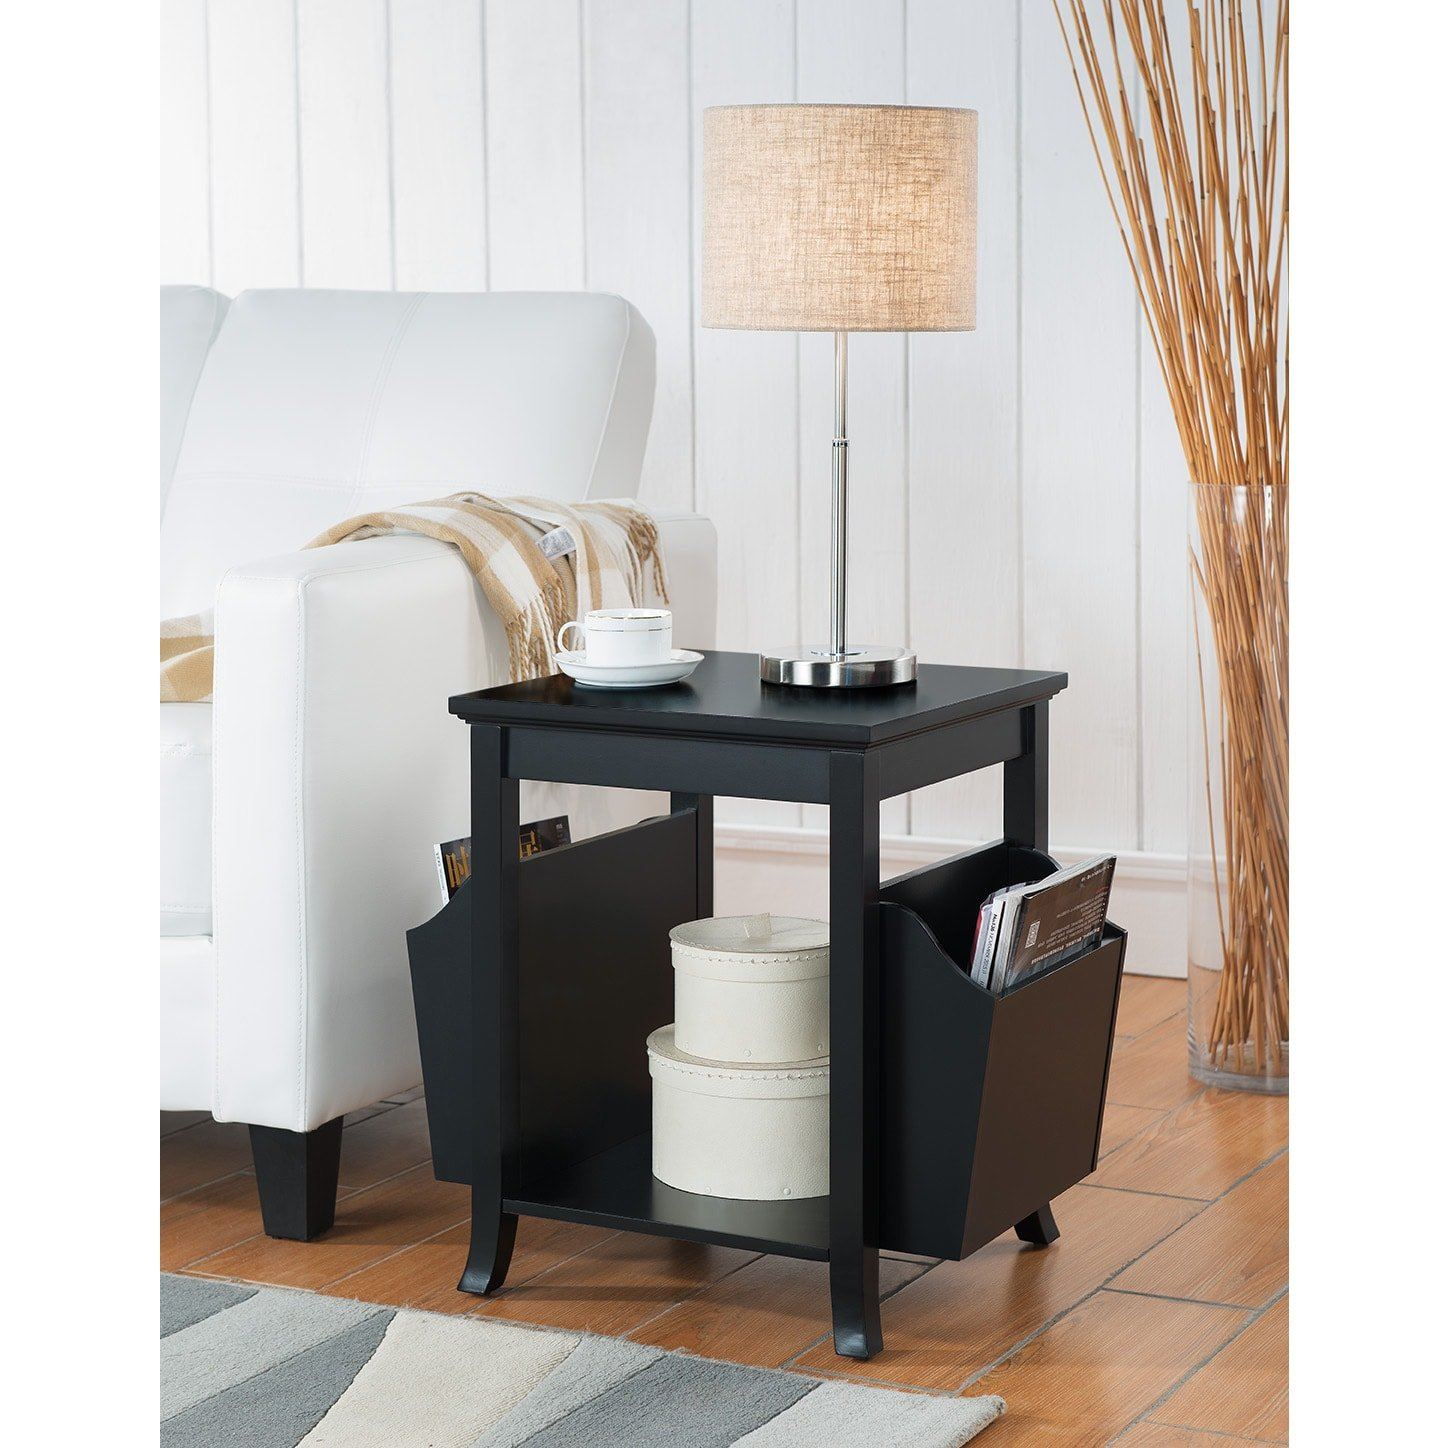 K and B Furniture Co Inc K & B Furniture Black Wood Veneer Accent Table with Magazine Rack